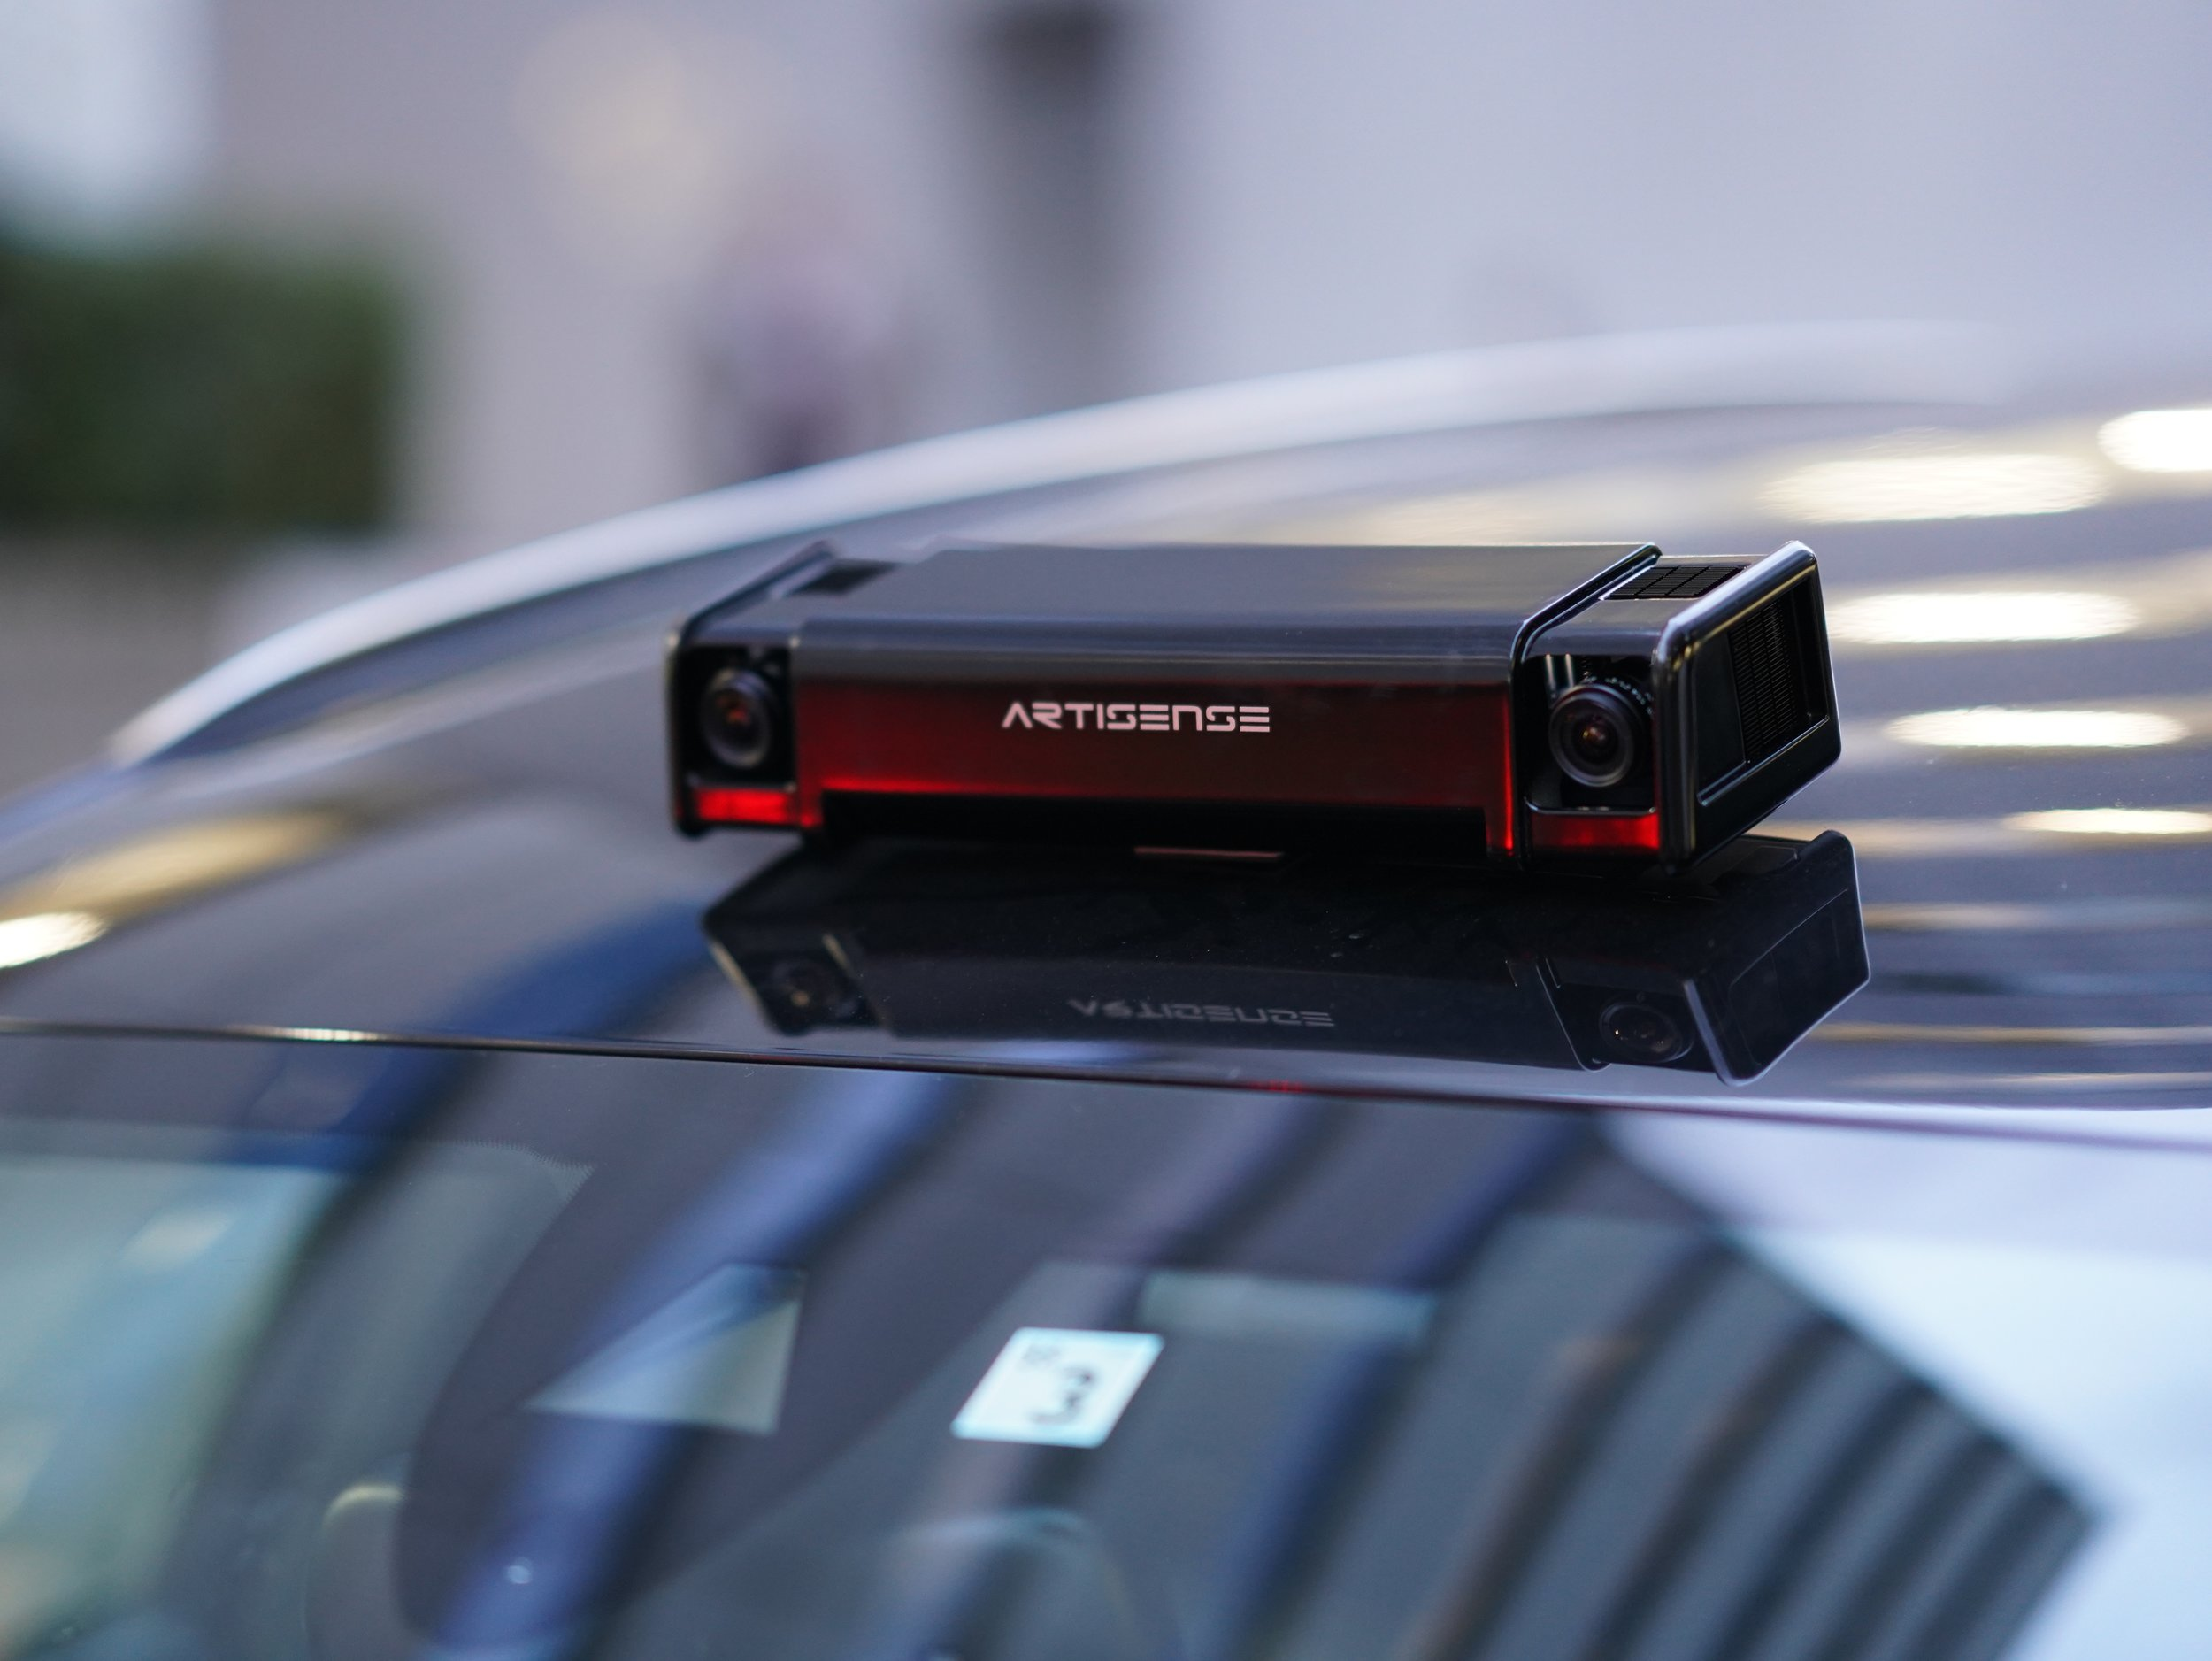 Artisense Mobile Mapping System